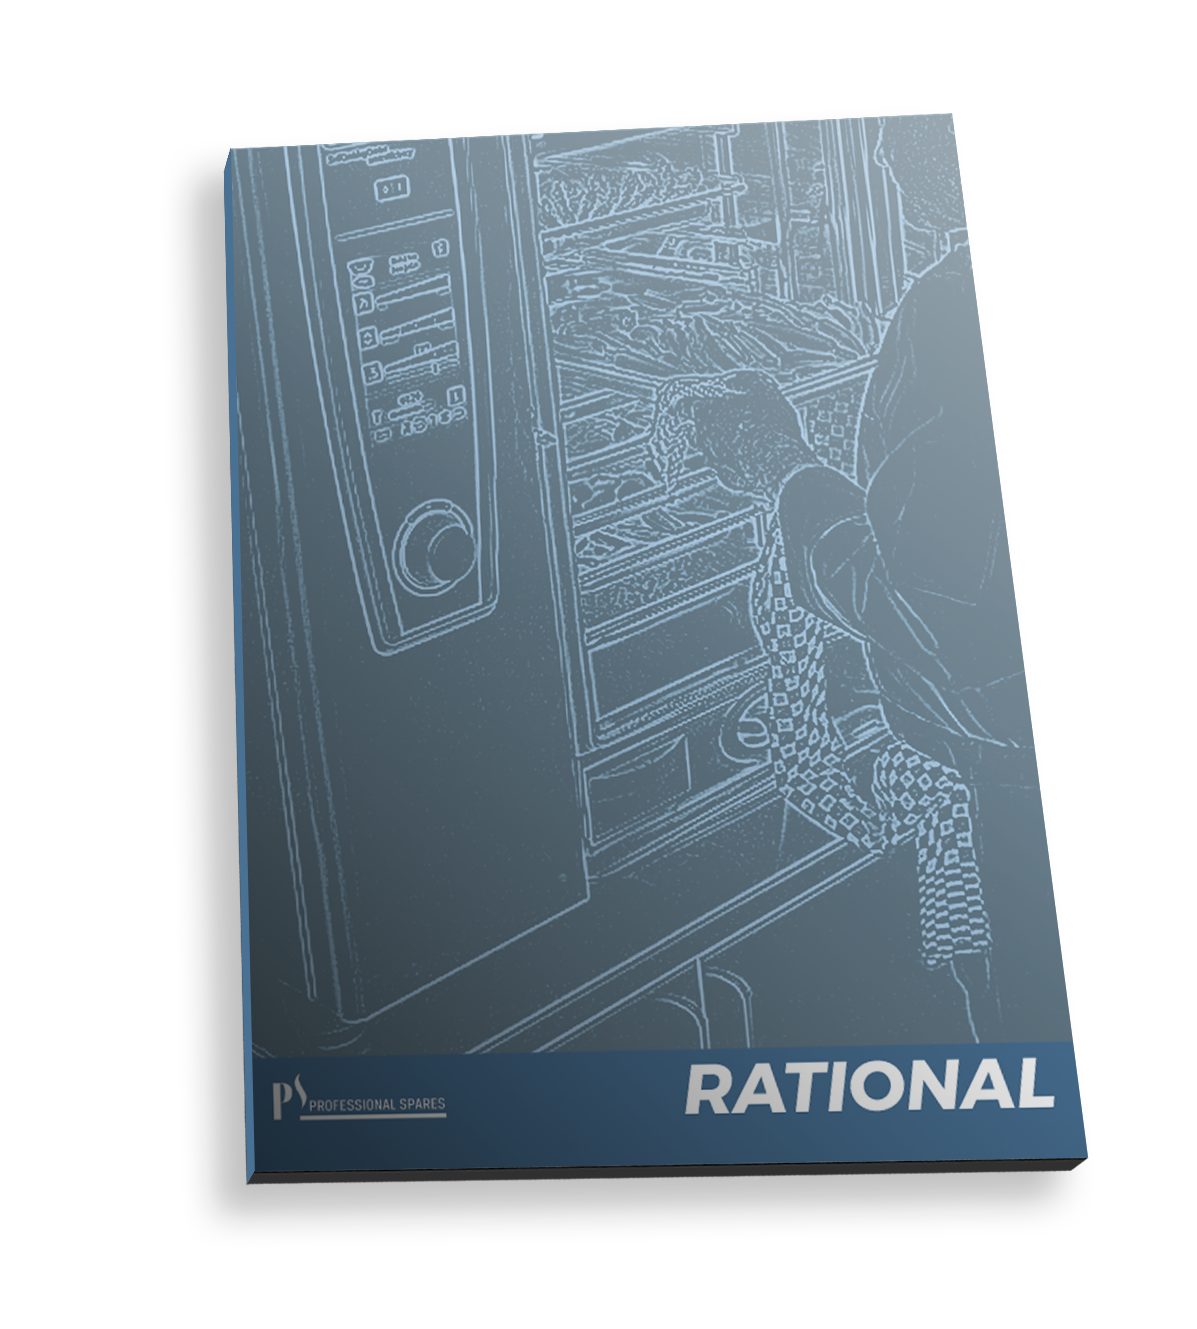 RATIONAL-catalogo